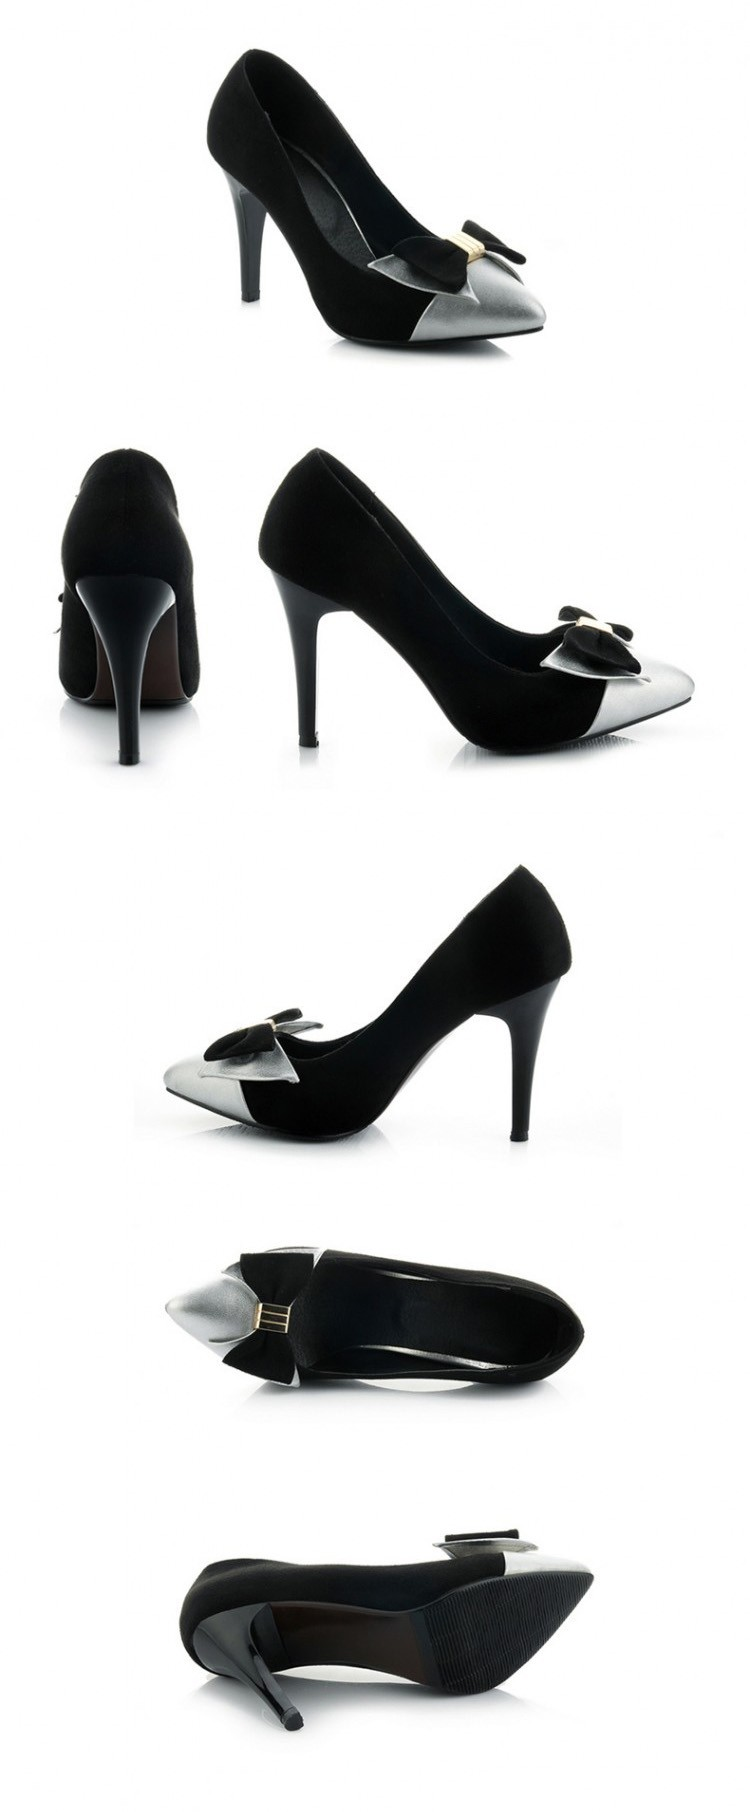 Fashion Thin High Heels Women Pumps Sweet Bowtie Pointed Toe Shoes New Arrival Women Shoes Zapatos Mujer ZM2.0